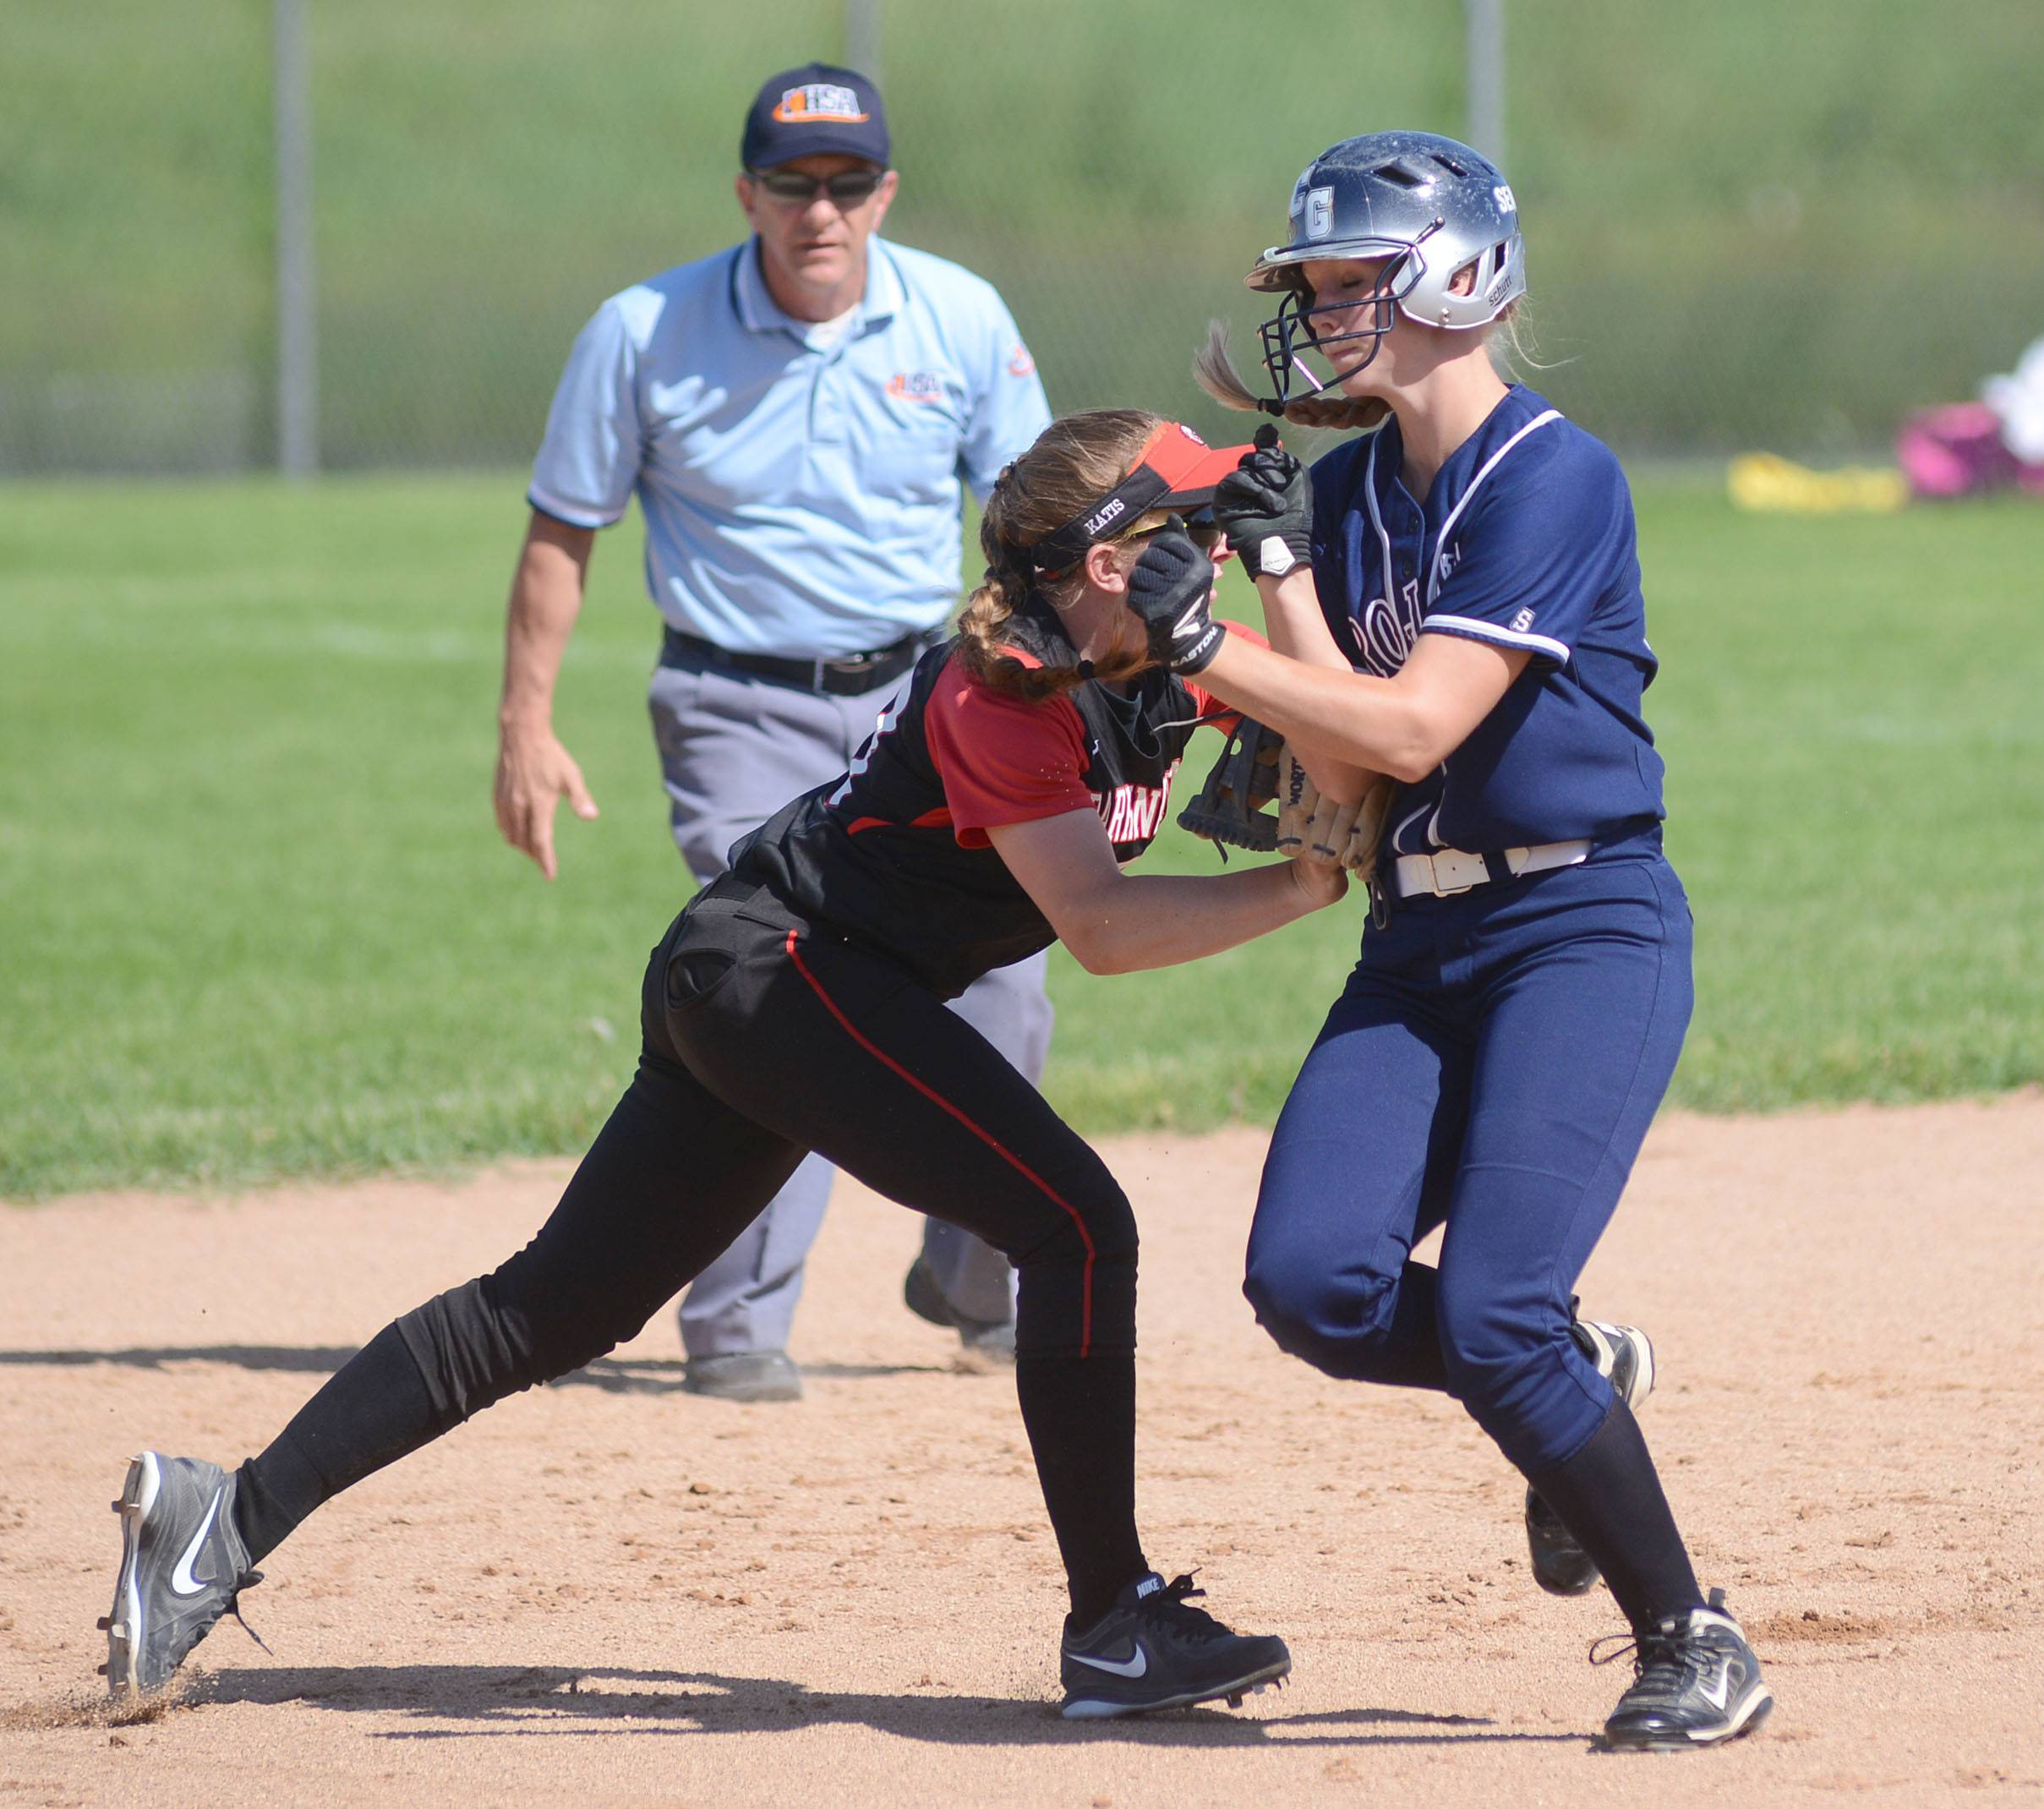 Barrington's Kelly Katis tags out Lisa Semro on her way to second base in the Class 4A girls softball regional championship in Cary on Friday, May 30.